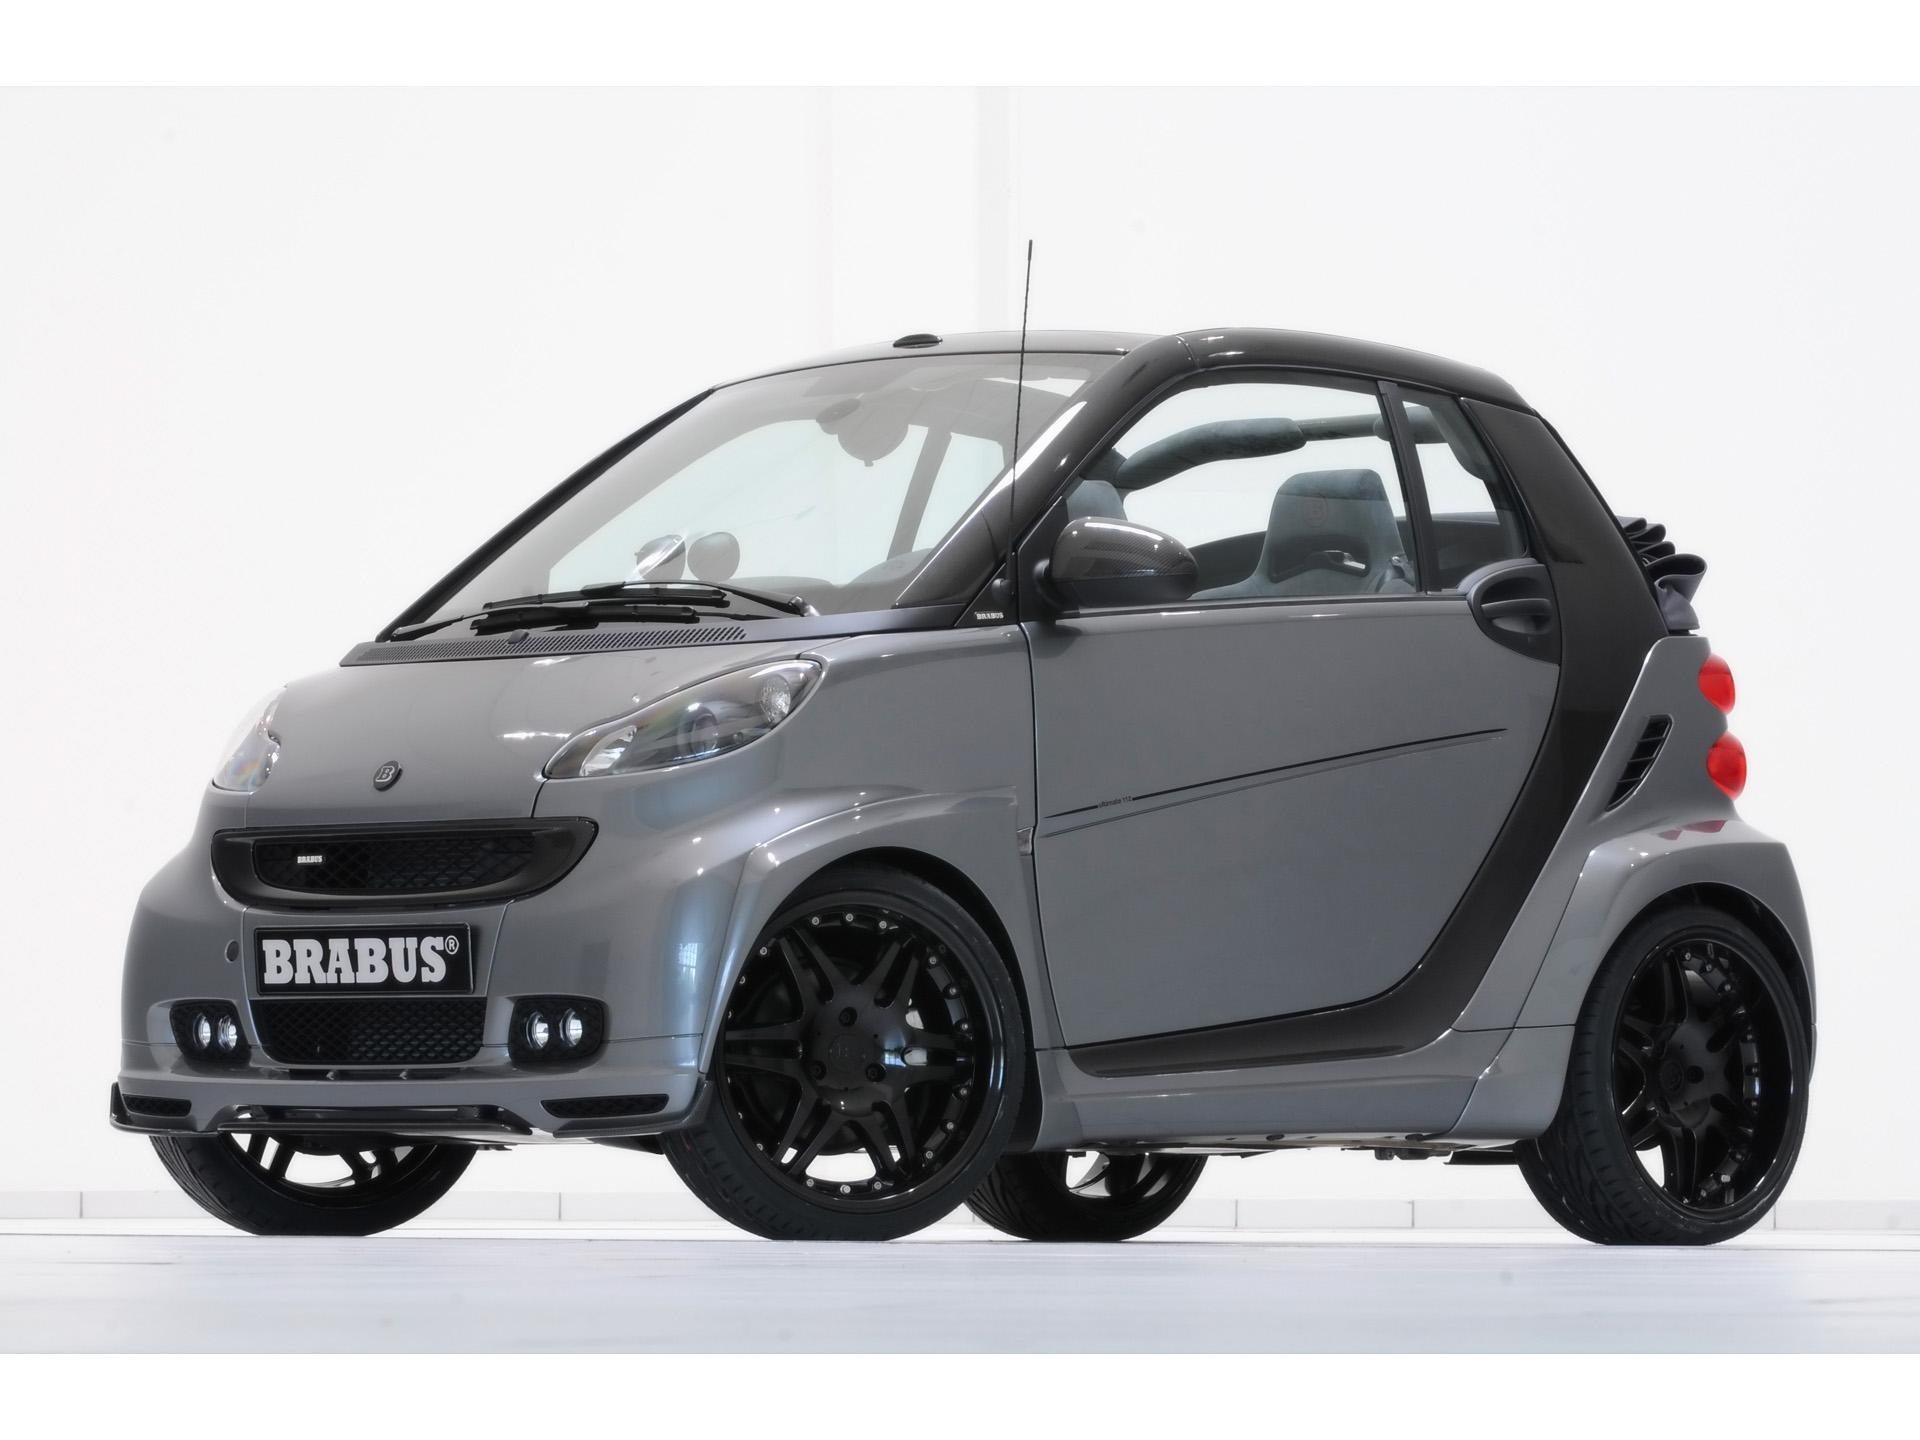 2010 brabus fortwo ultimate r technical specifications and data engine dimensions and. Black Bedroom Furniture Sets. Home Design Ideas